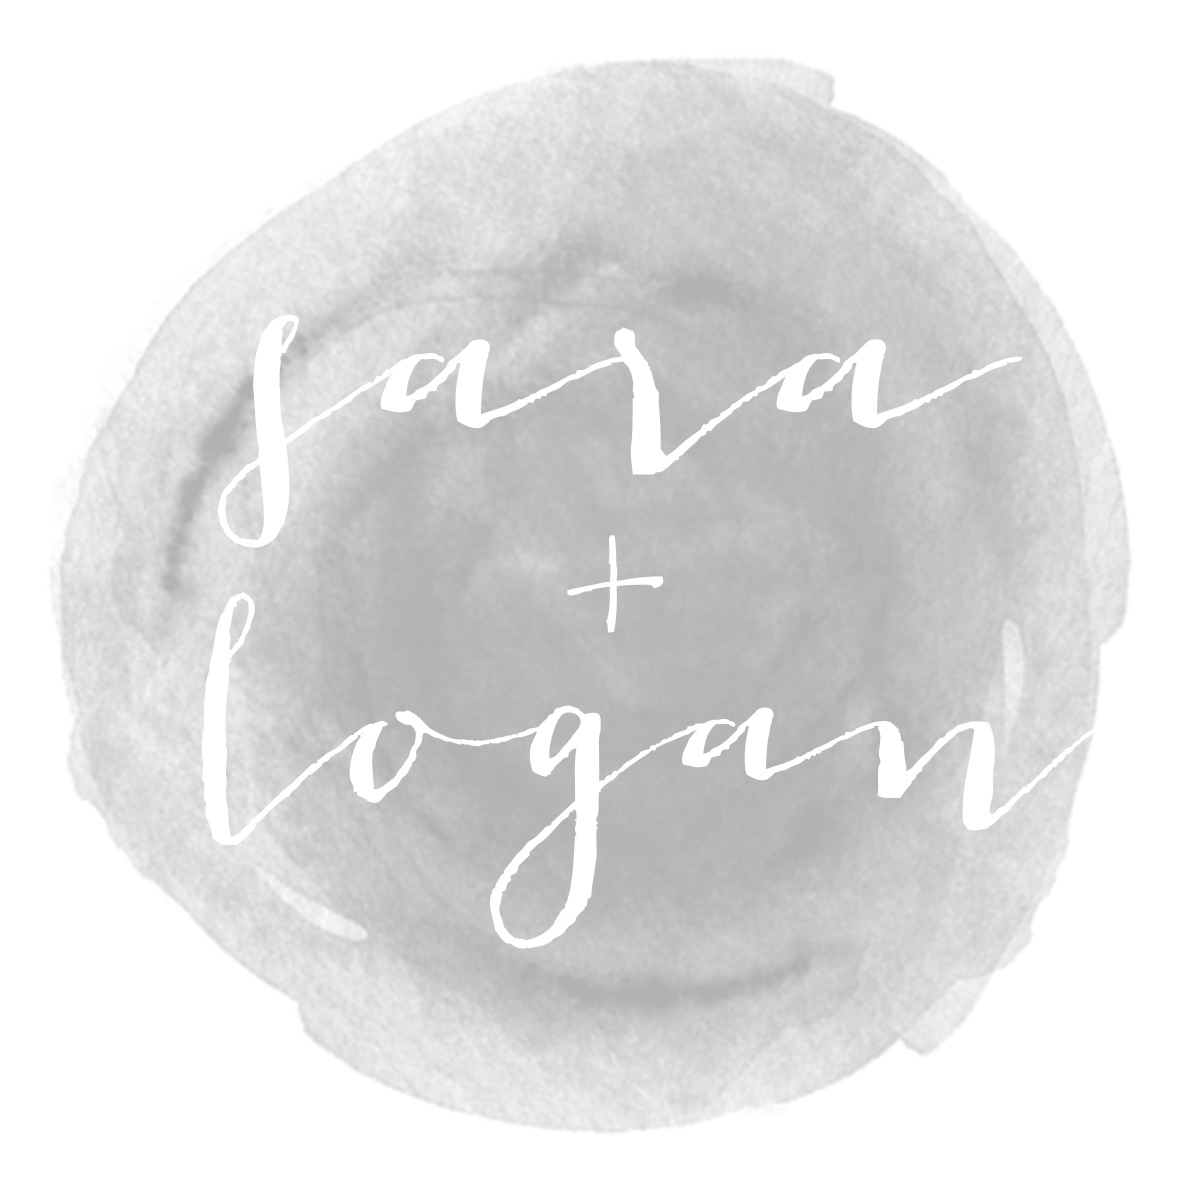 Sara + Logan Weddings